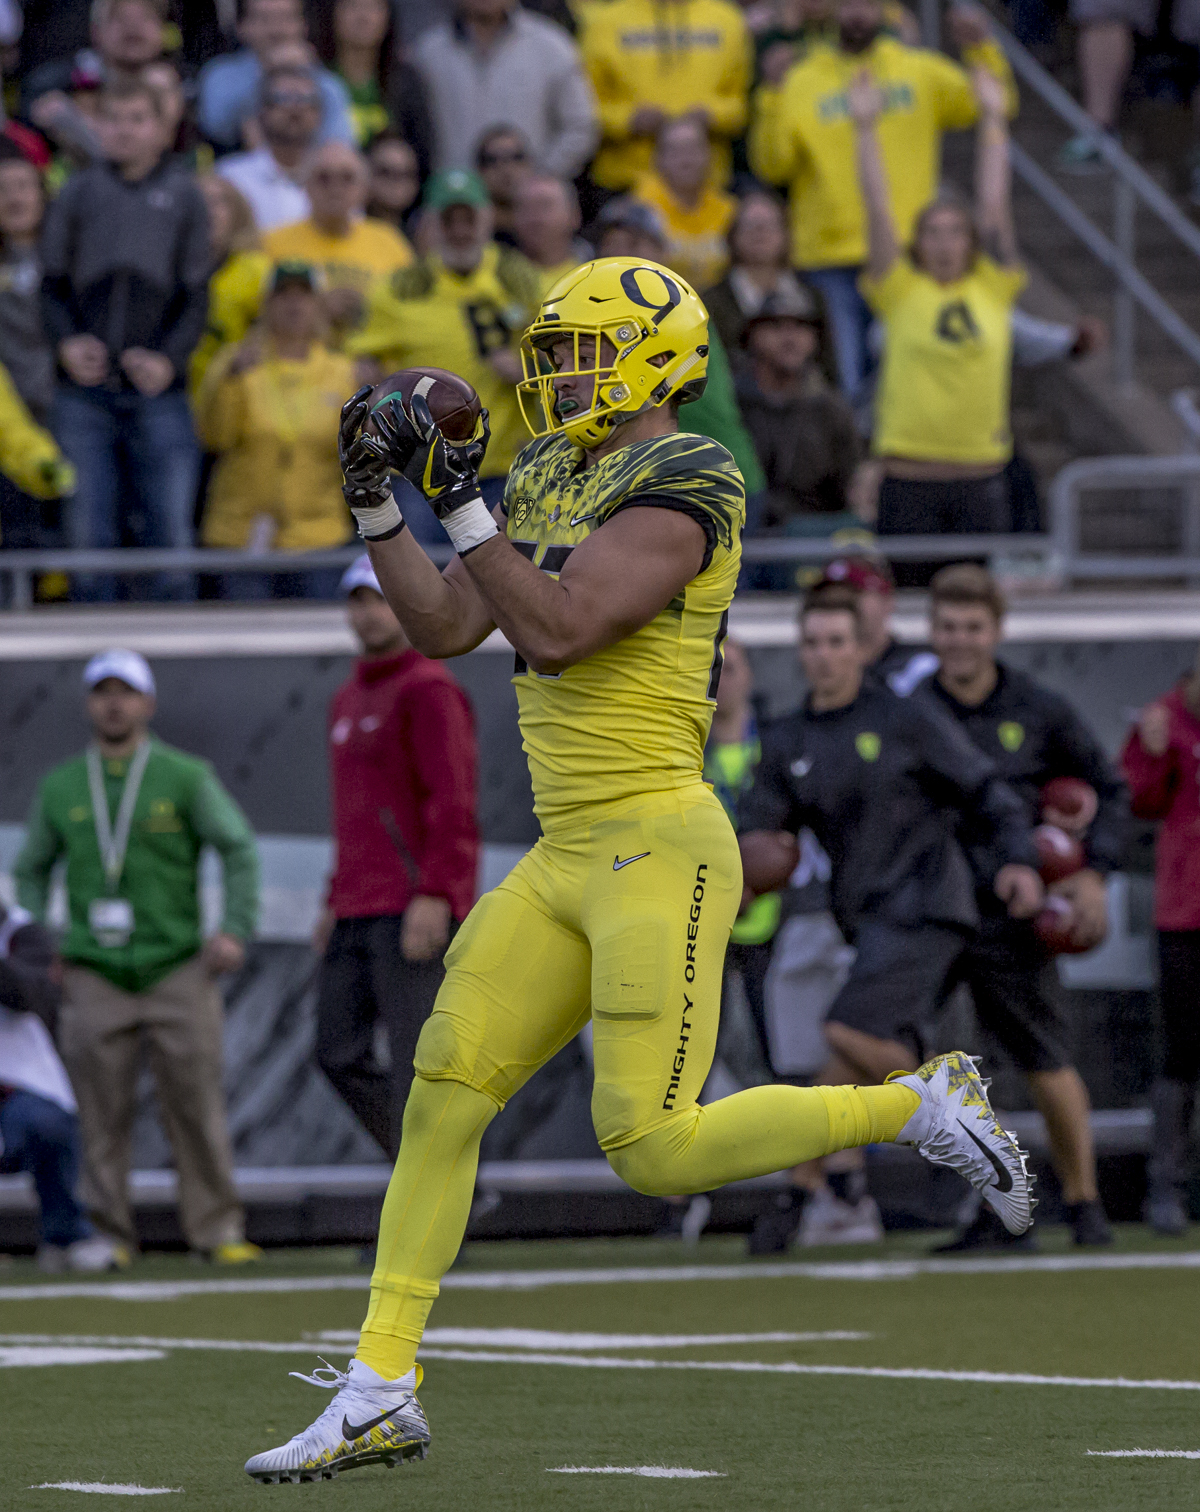 Oregon tight end Jacob Breeland (#27) catches a pass from Oregon quarterback Braxton Burmeister (#11). The Oregon Ducks trail the Washington State Cougars 10 to 13 at the end of the first half. Photo by Ben Lonergan, Oregon News Lab